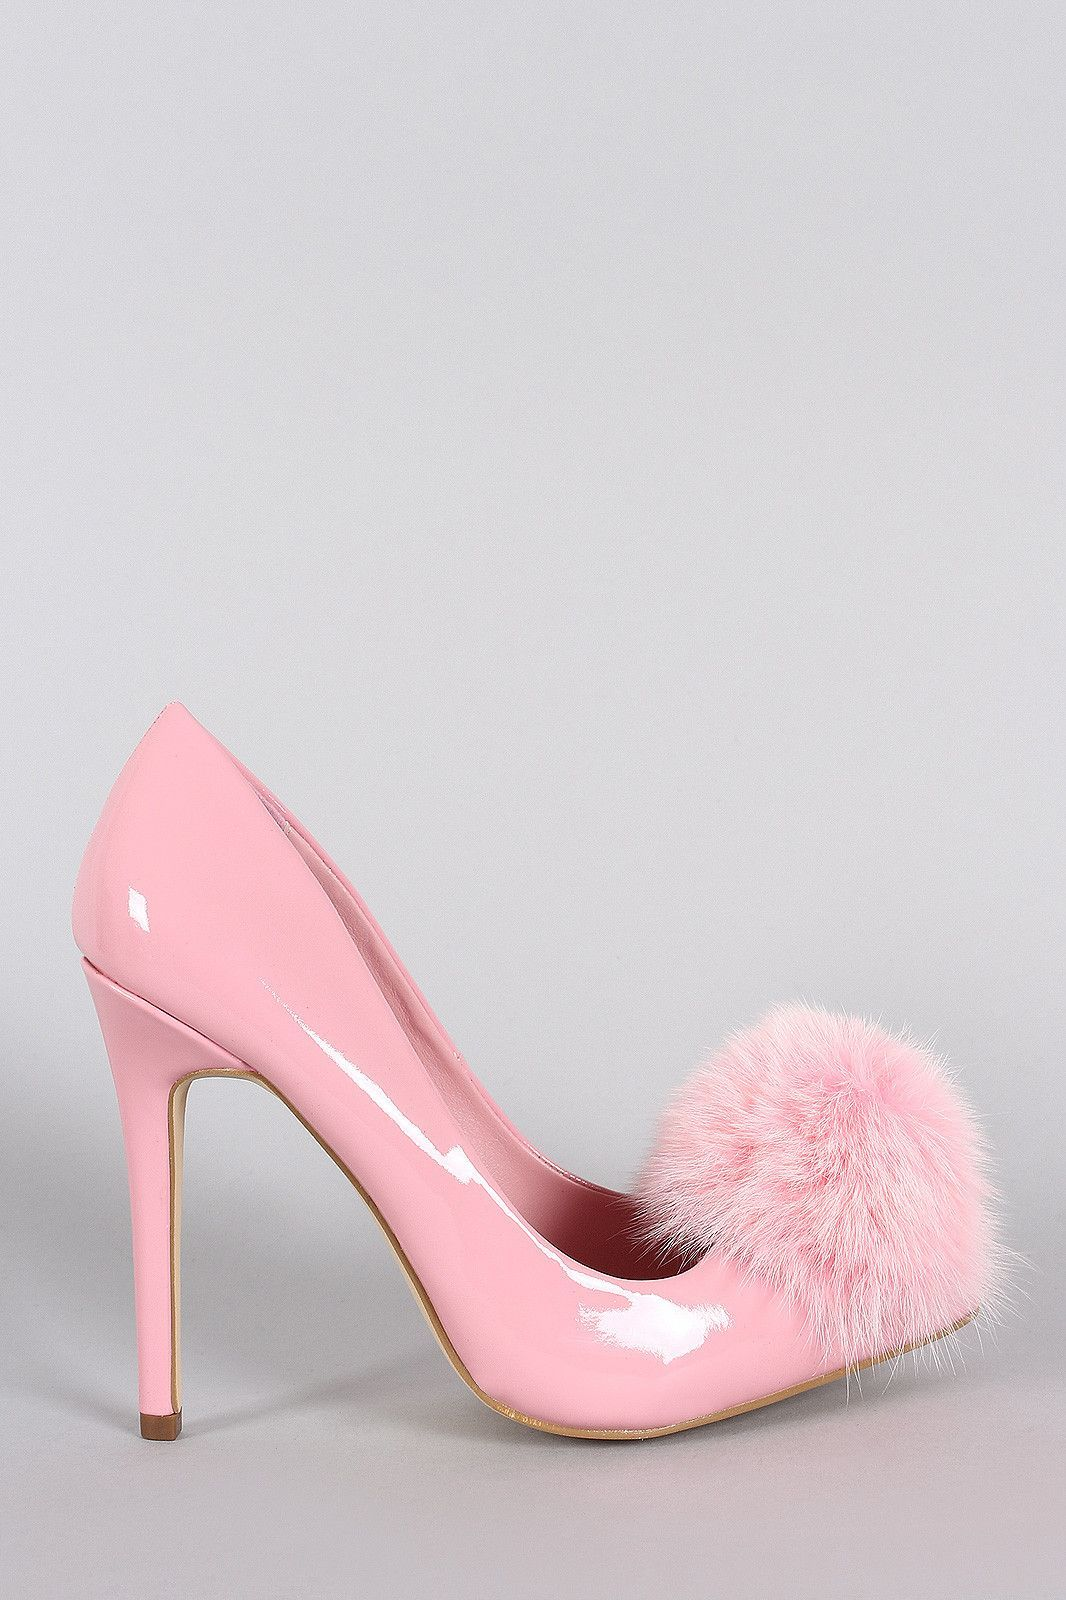 """Description        This lovely pointy toe silhouette, patent upper with eye-catching faux fur pom pom detail, single sole, and wrapped stiletto heel. Finished with lightly padded insole and easy slide style.    Material: Patent (man-made)  Sole: Synthetic      Measurement            Heel Height: 4.5"""" (approx)     